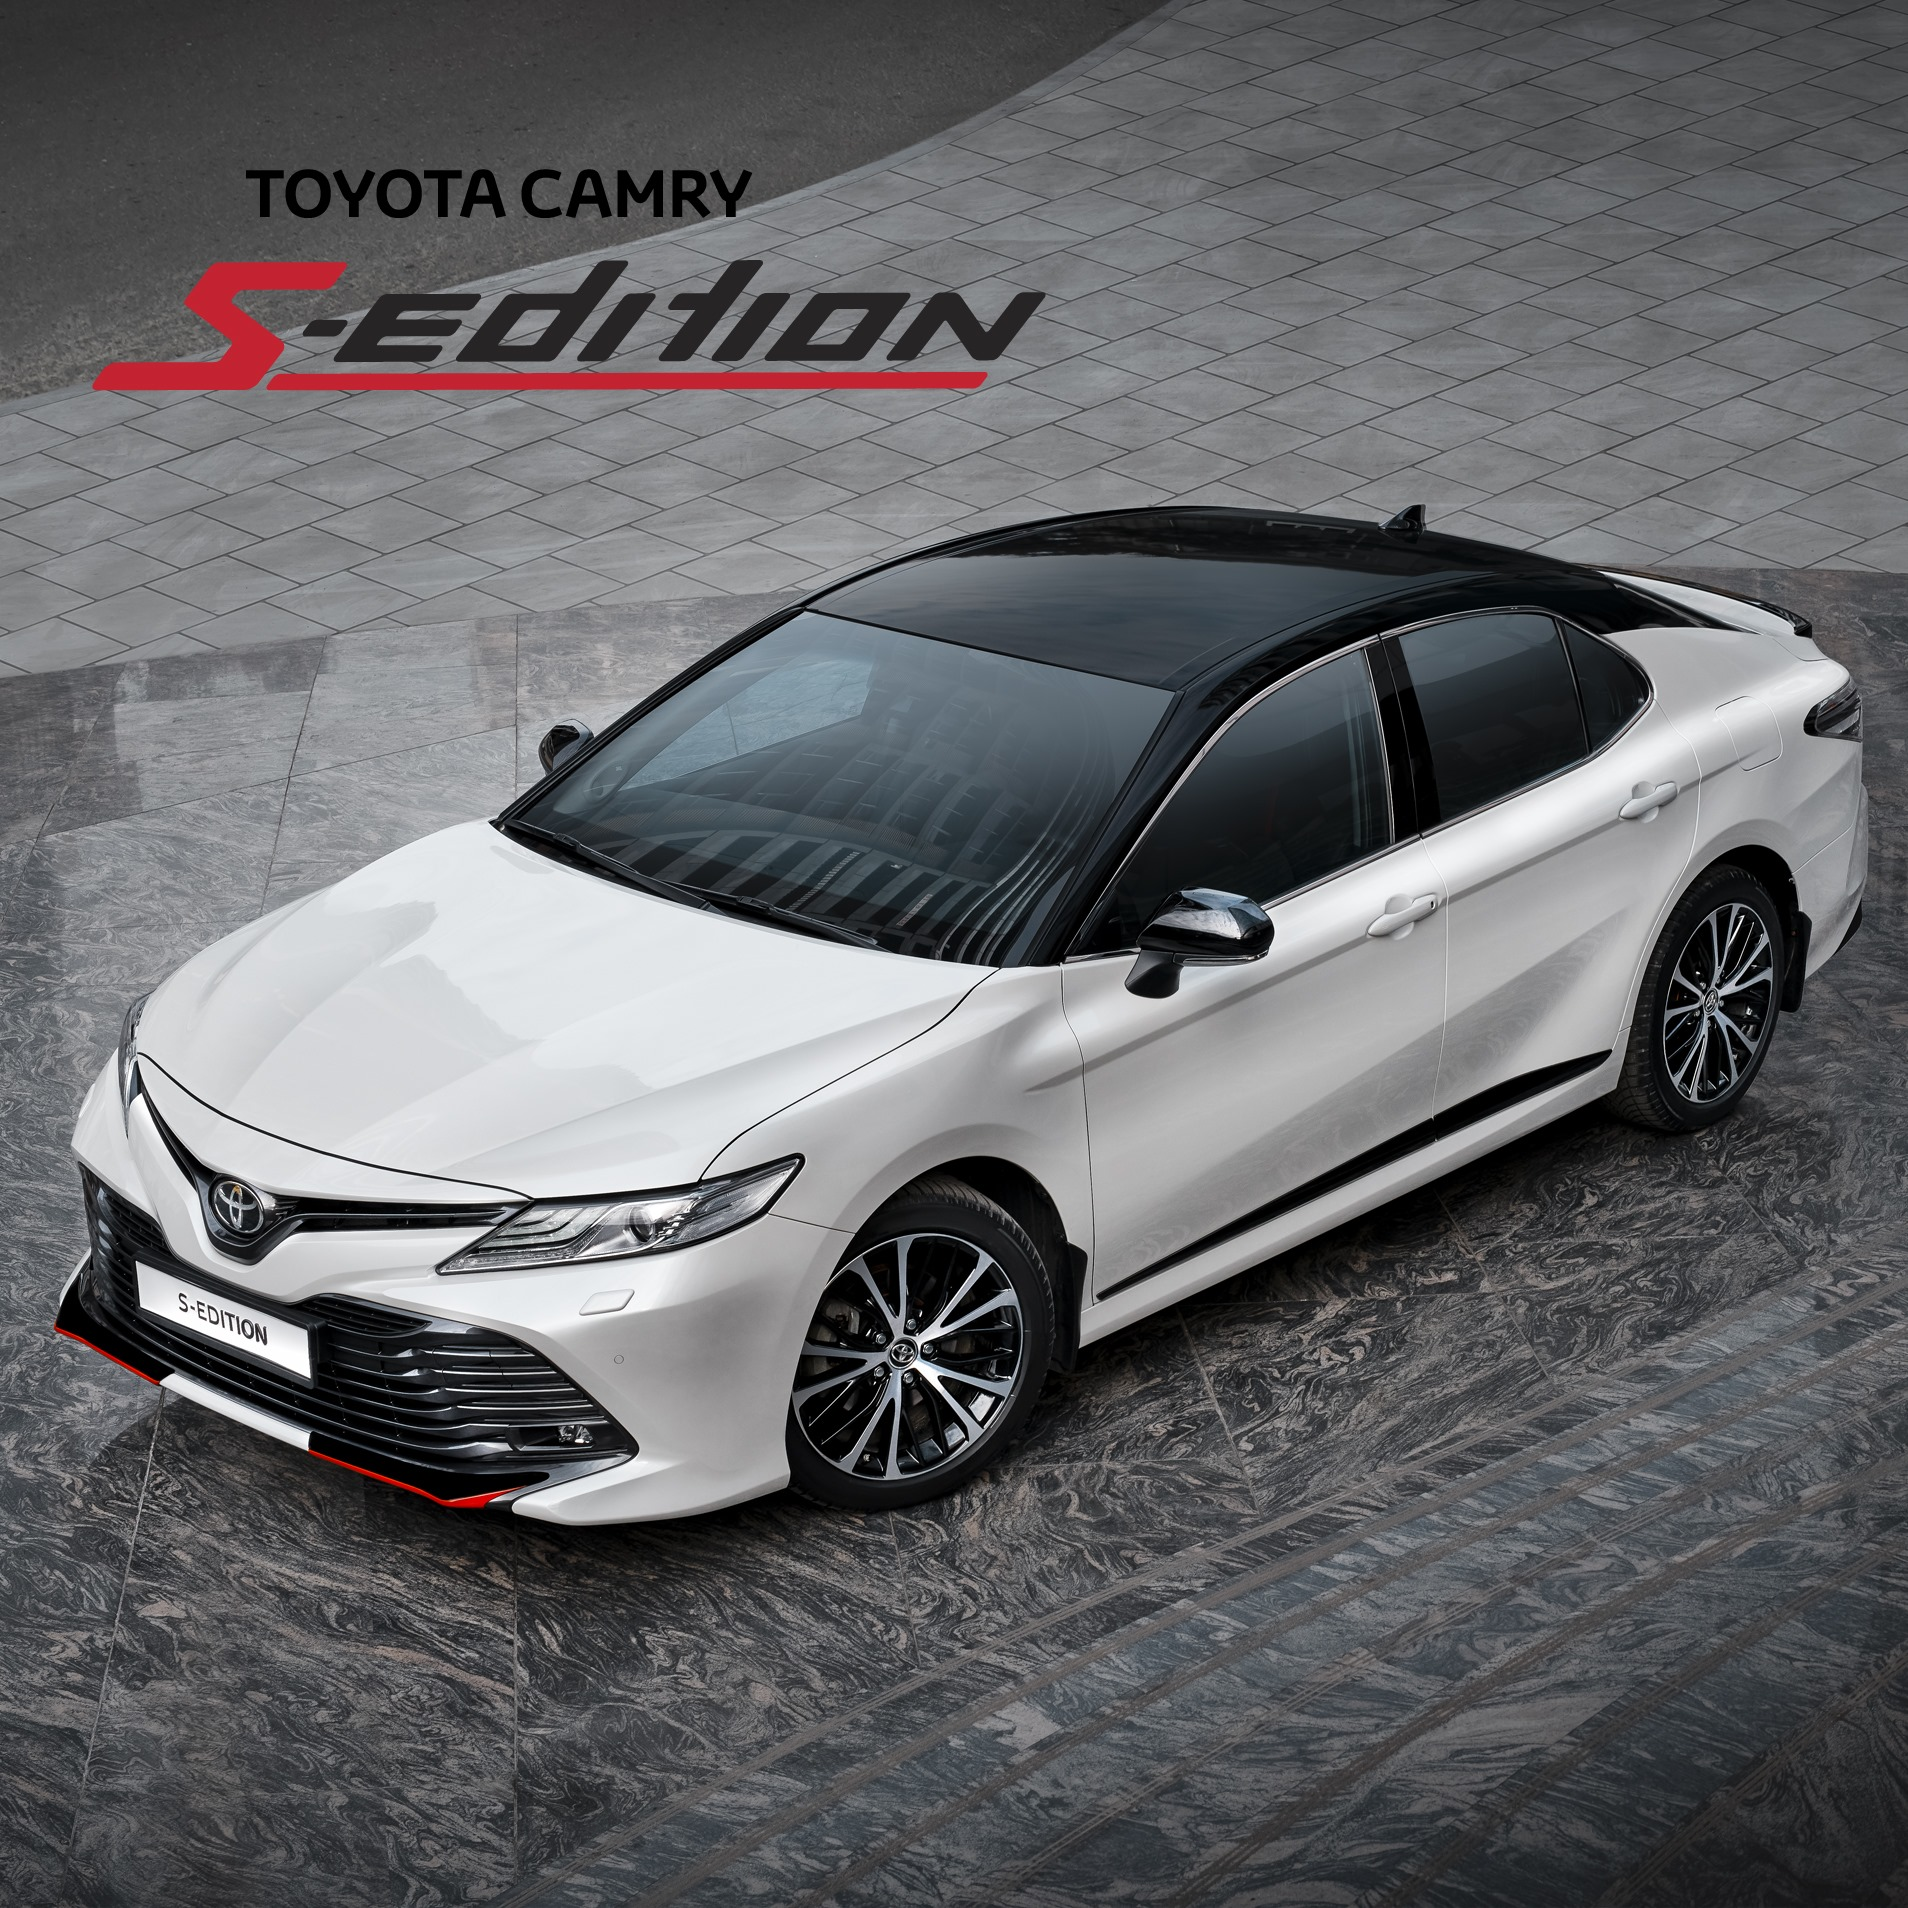 Toyota-Camry-S-Edition-2